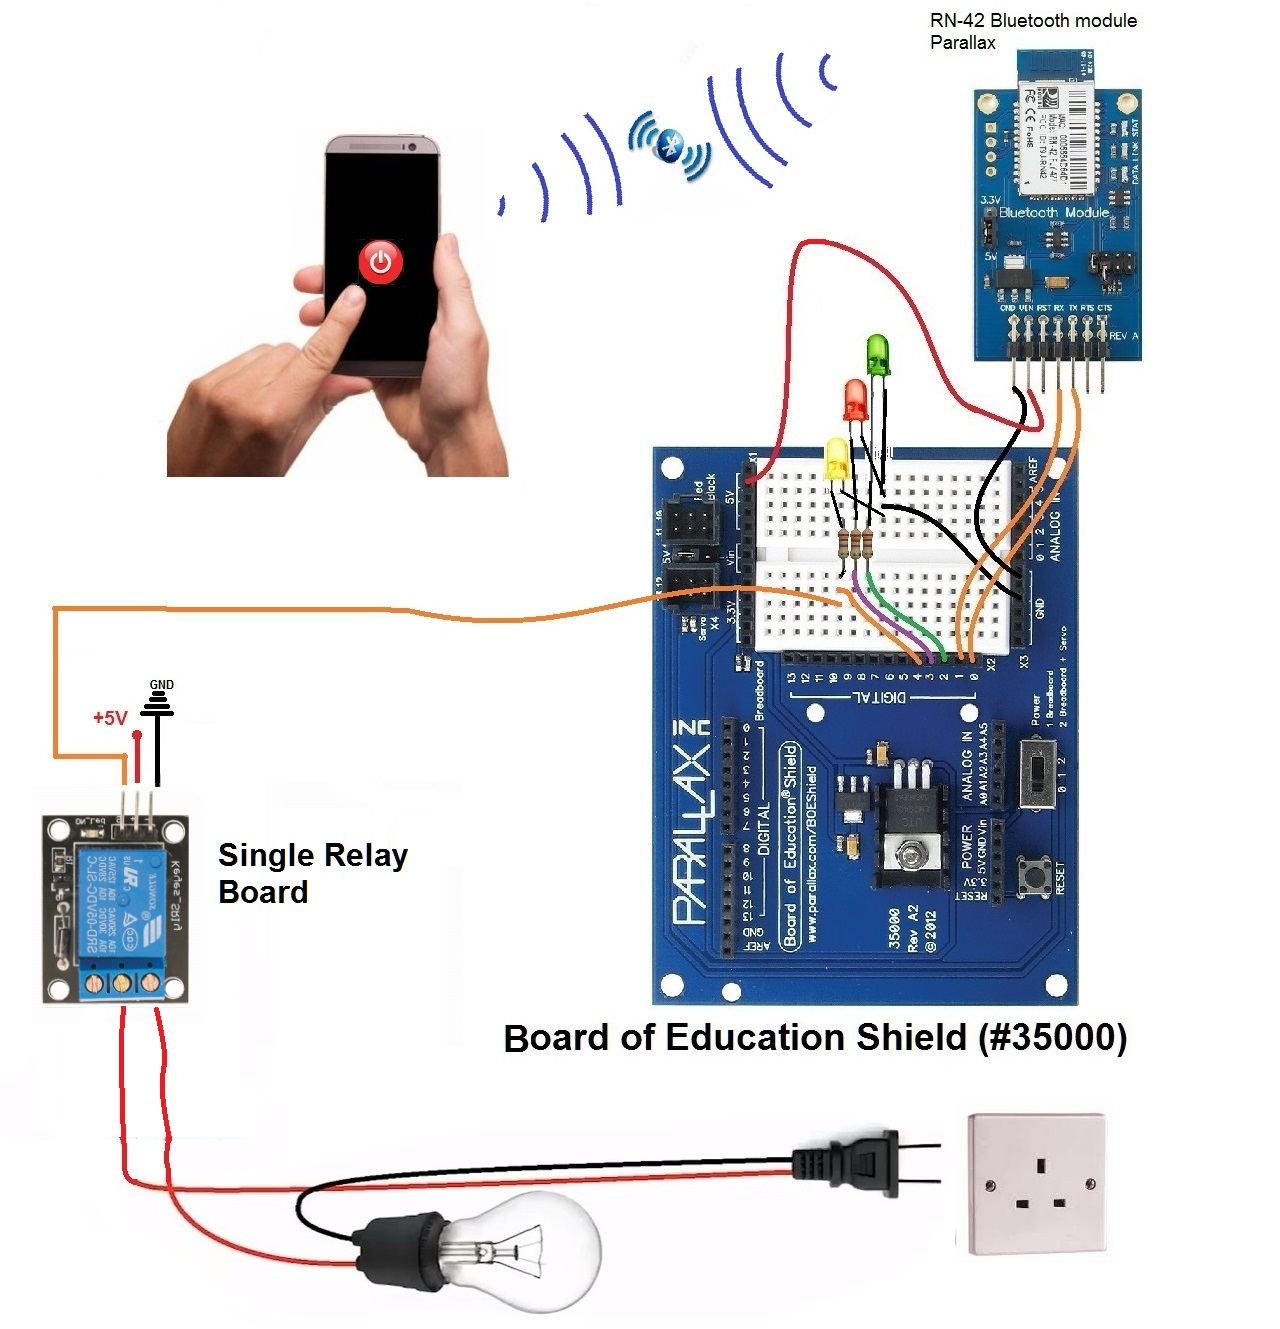 Android based Bluetooth chat - Free Open Source Codes